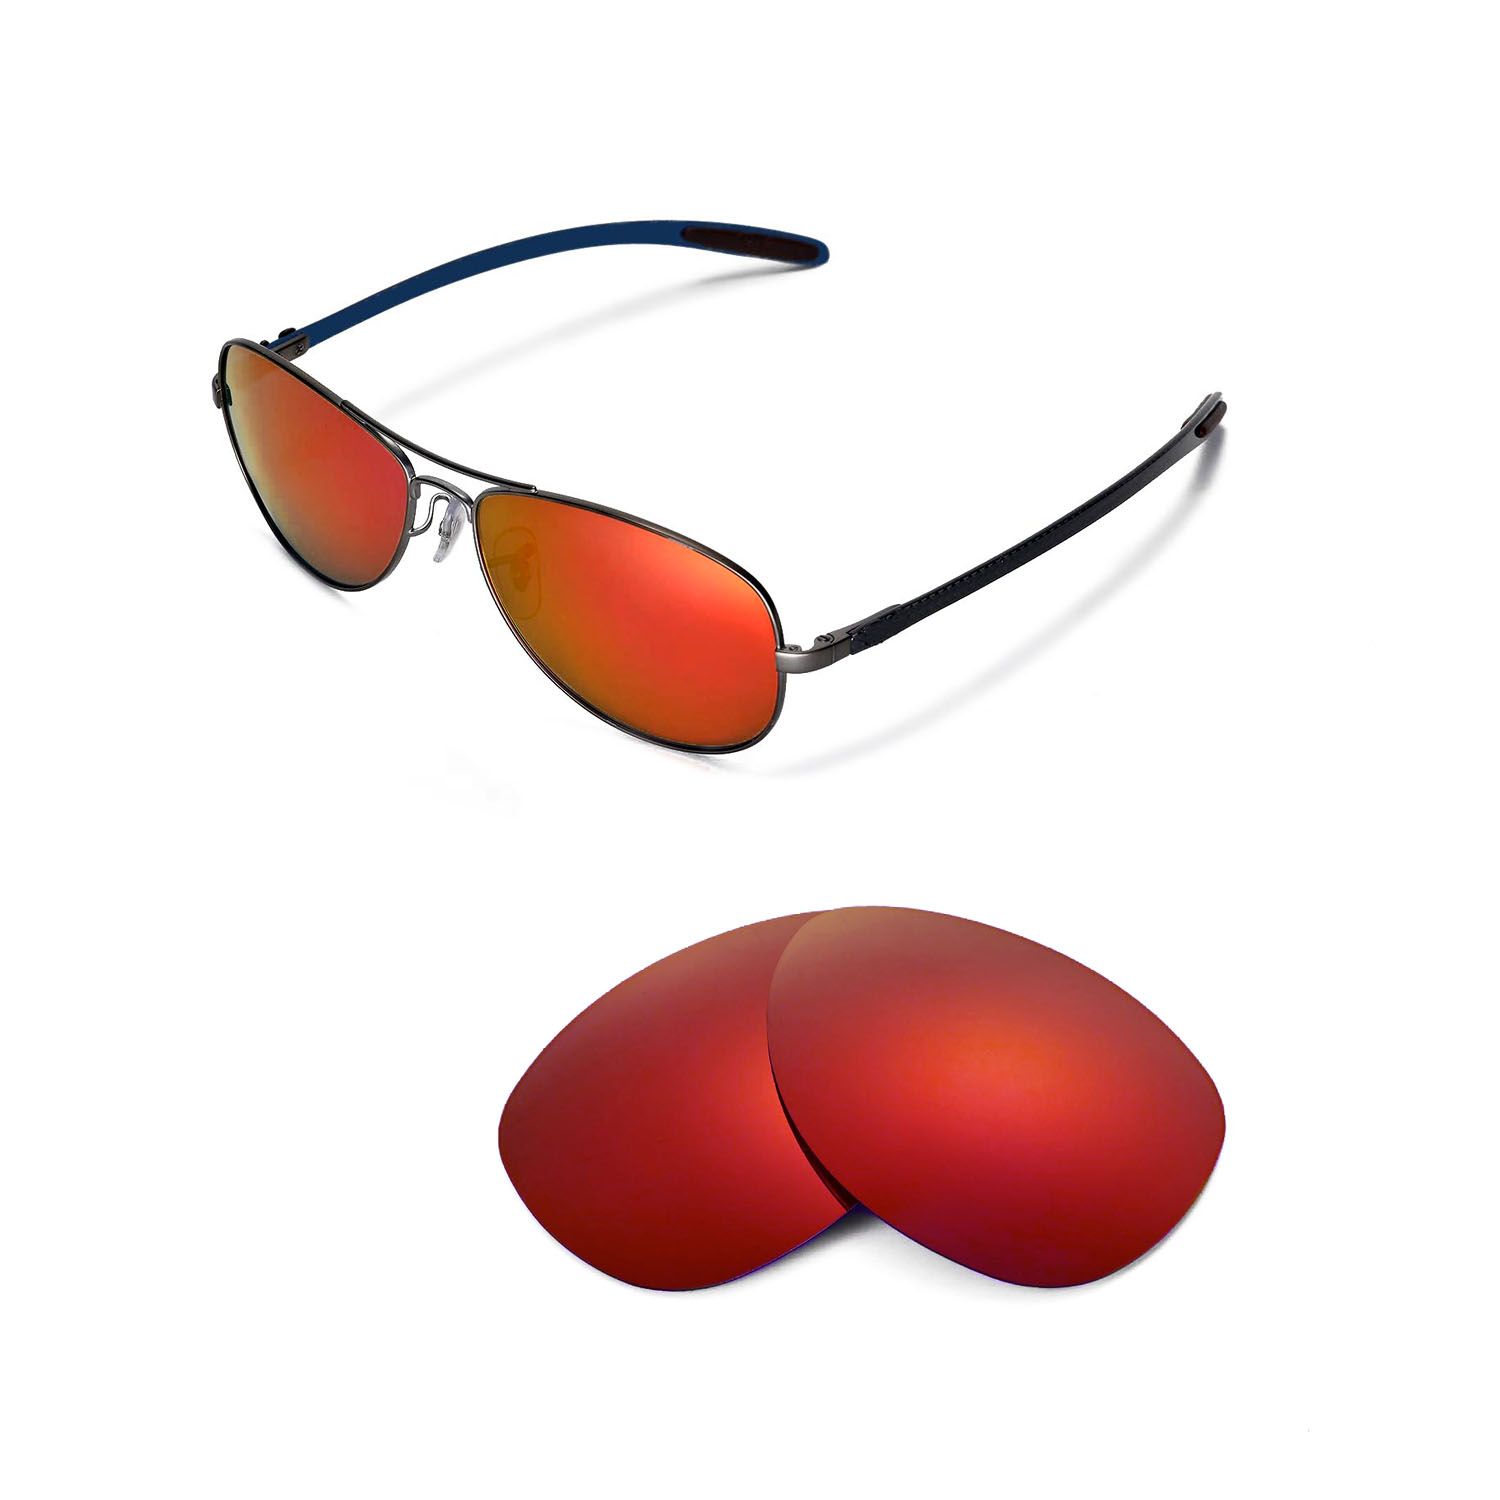 d591a33107 Details about New Walleva Polarized Fire Red Replacement For Ray-Ban RB8301  59mm